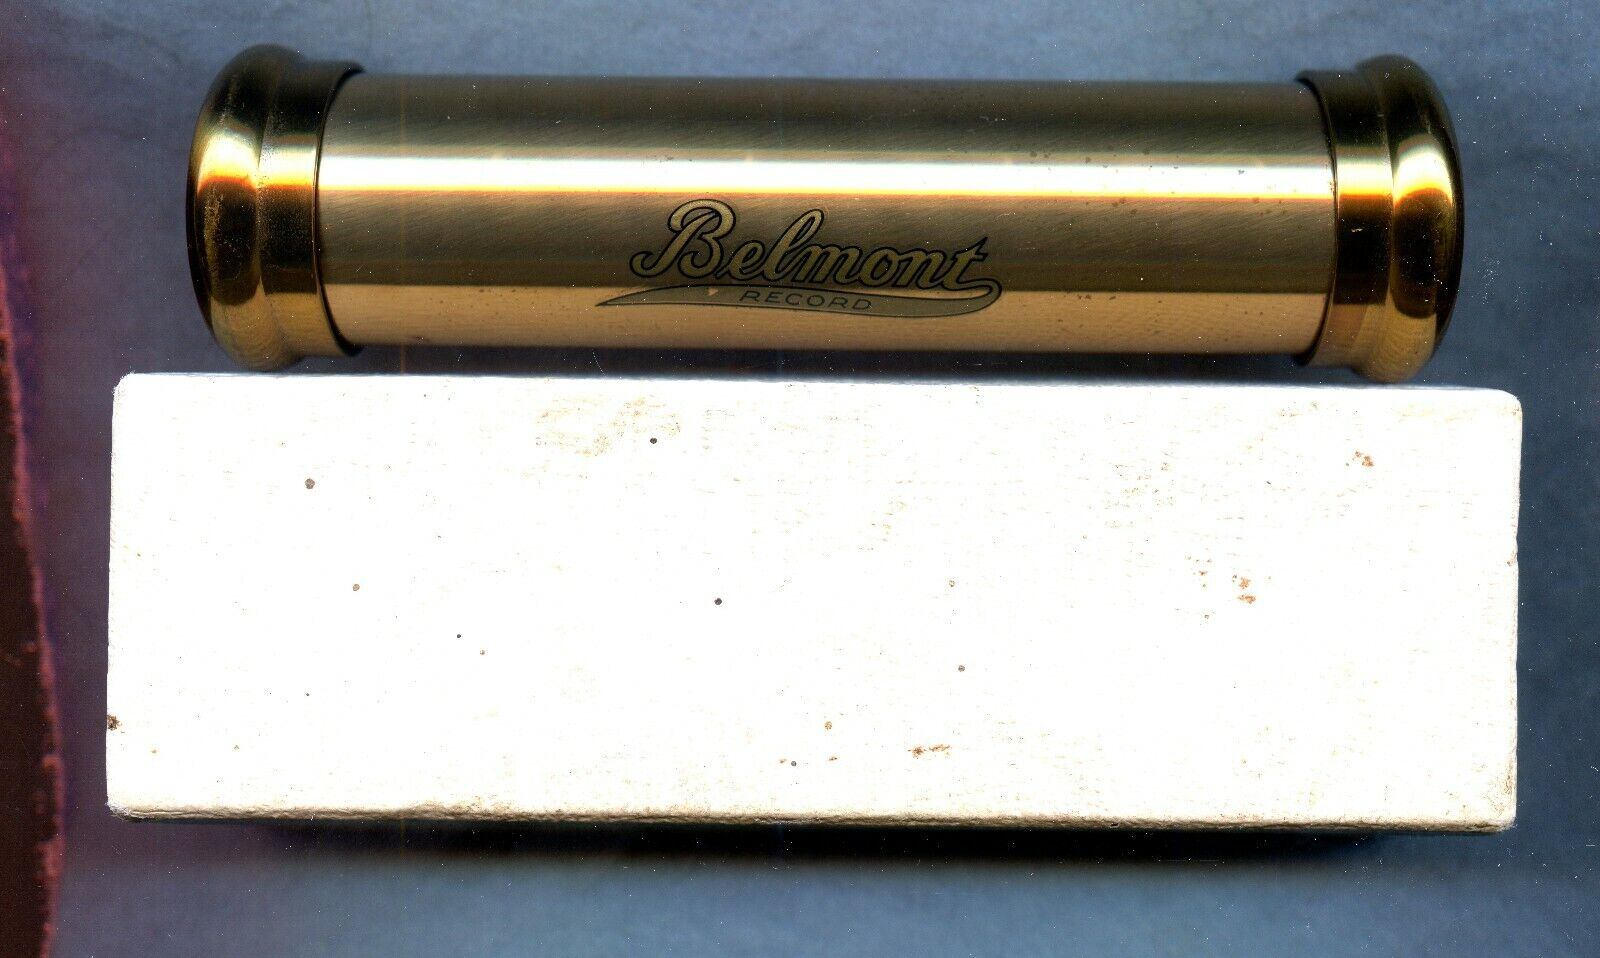 VINTAGE 1930 s BRASS BELMONT RECORD BURIAL MEMORY TUBE WITH BOX - $31.99